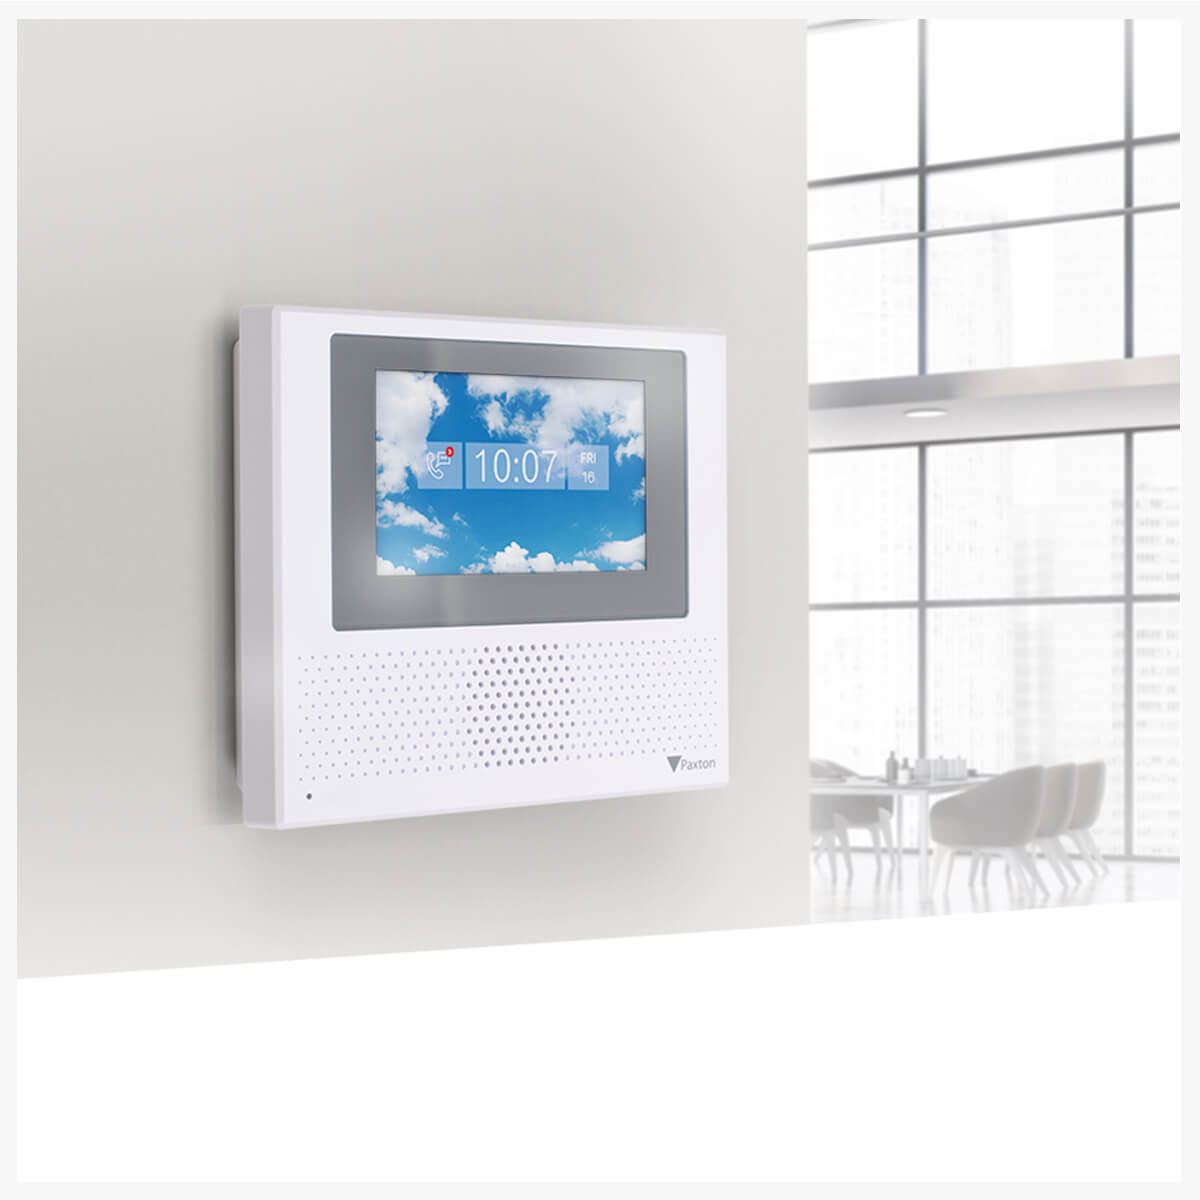 paxton-Entry-Standard-monitor